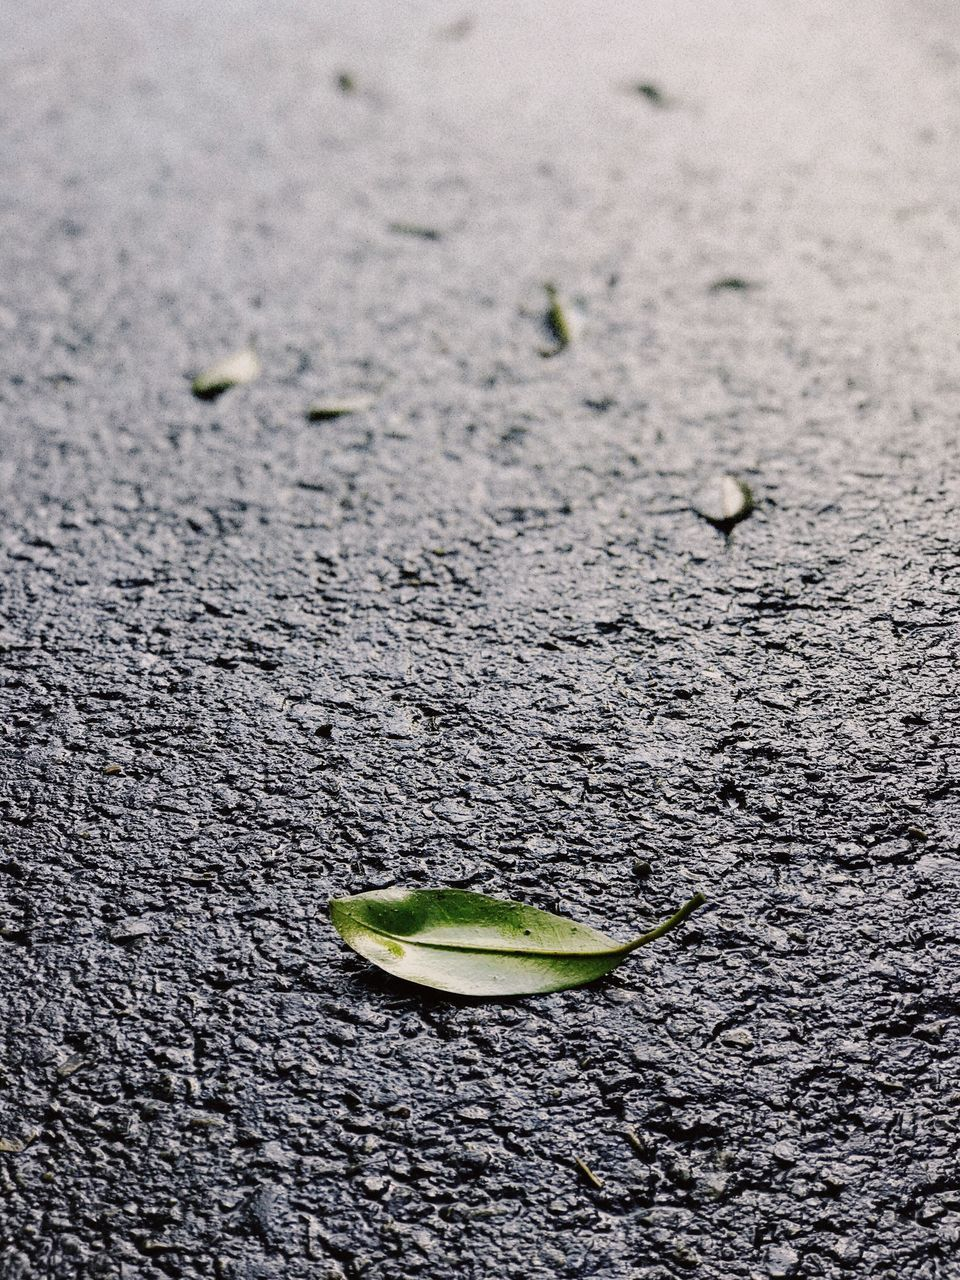 High Angle View Of Leaf On Wet Road